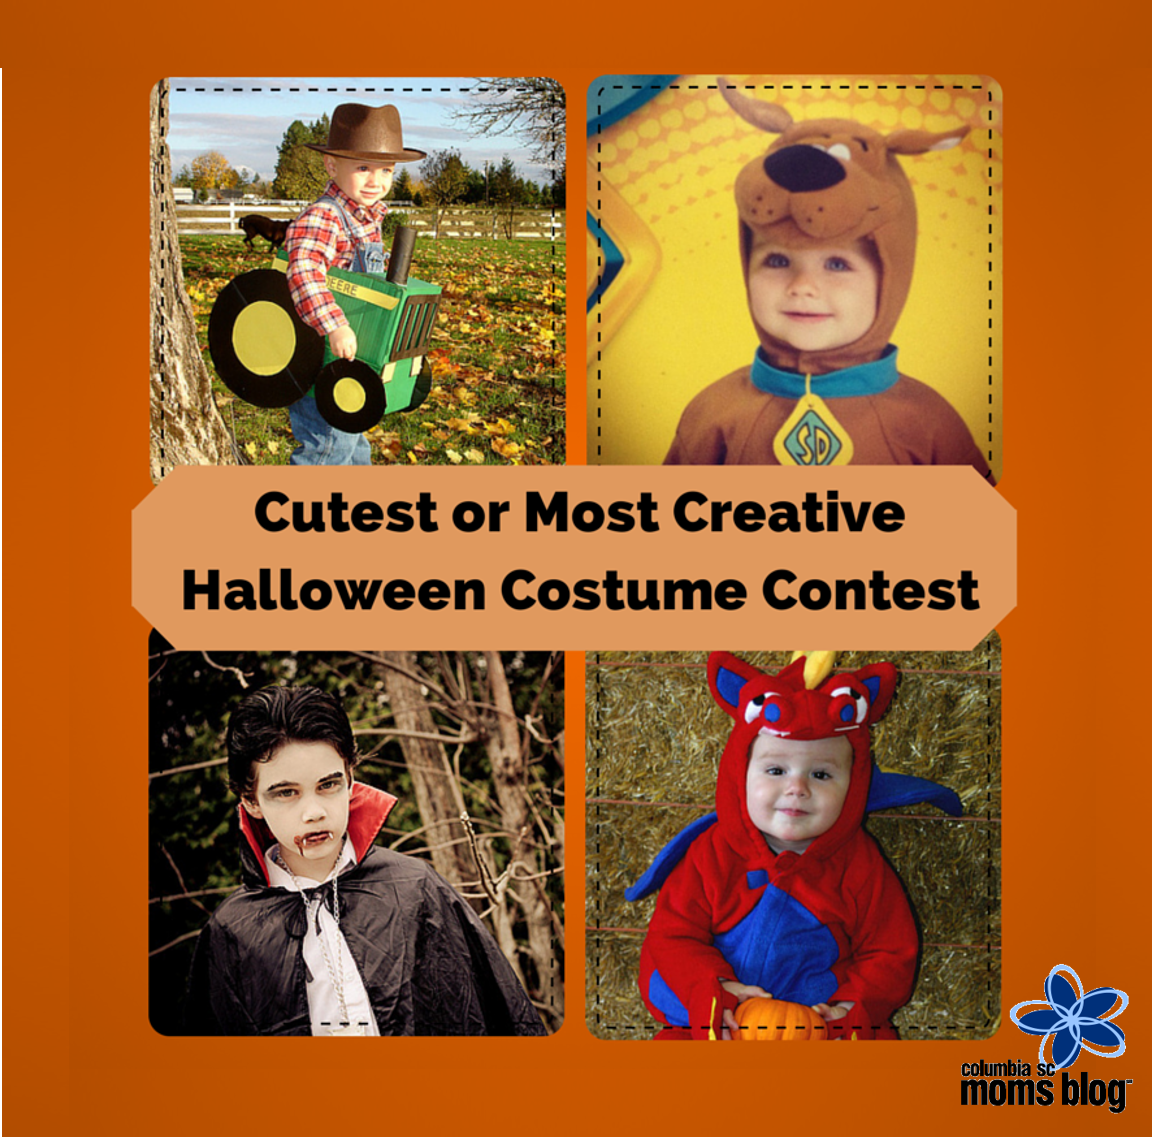 cutest or most creative halloween costume contest